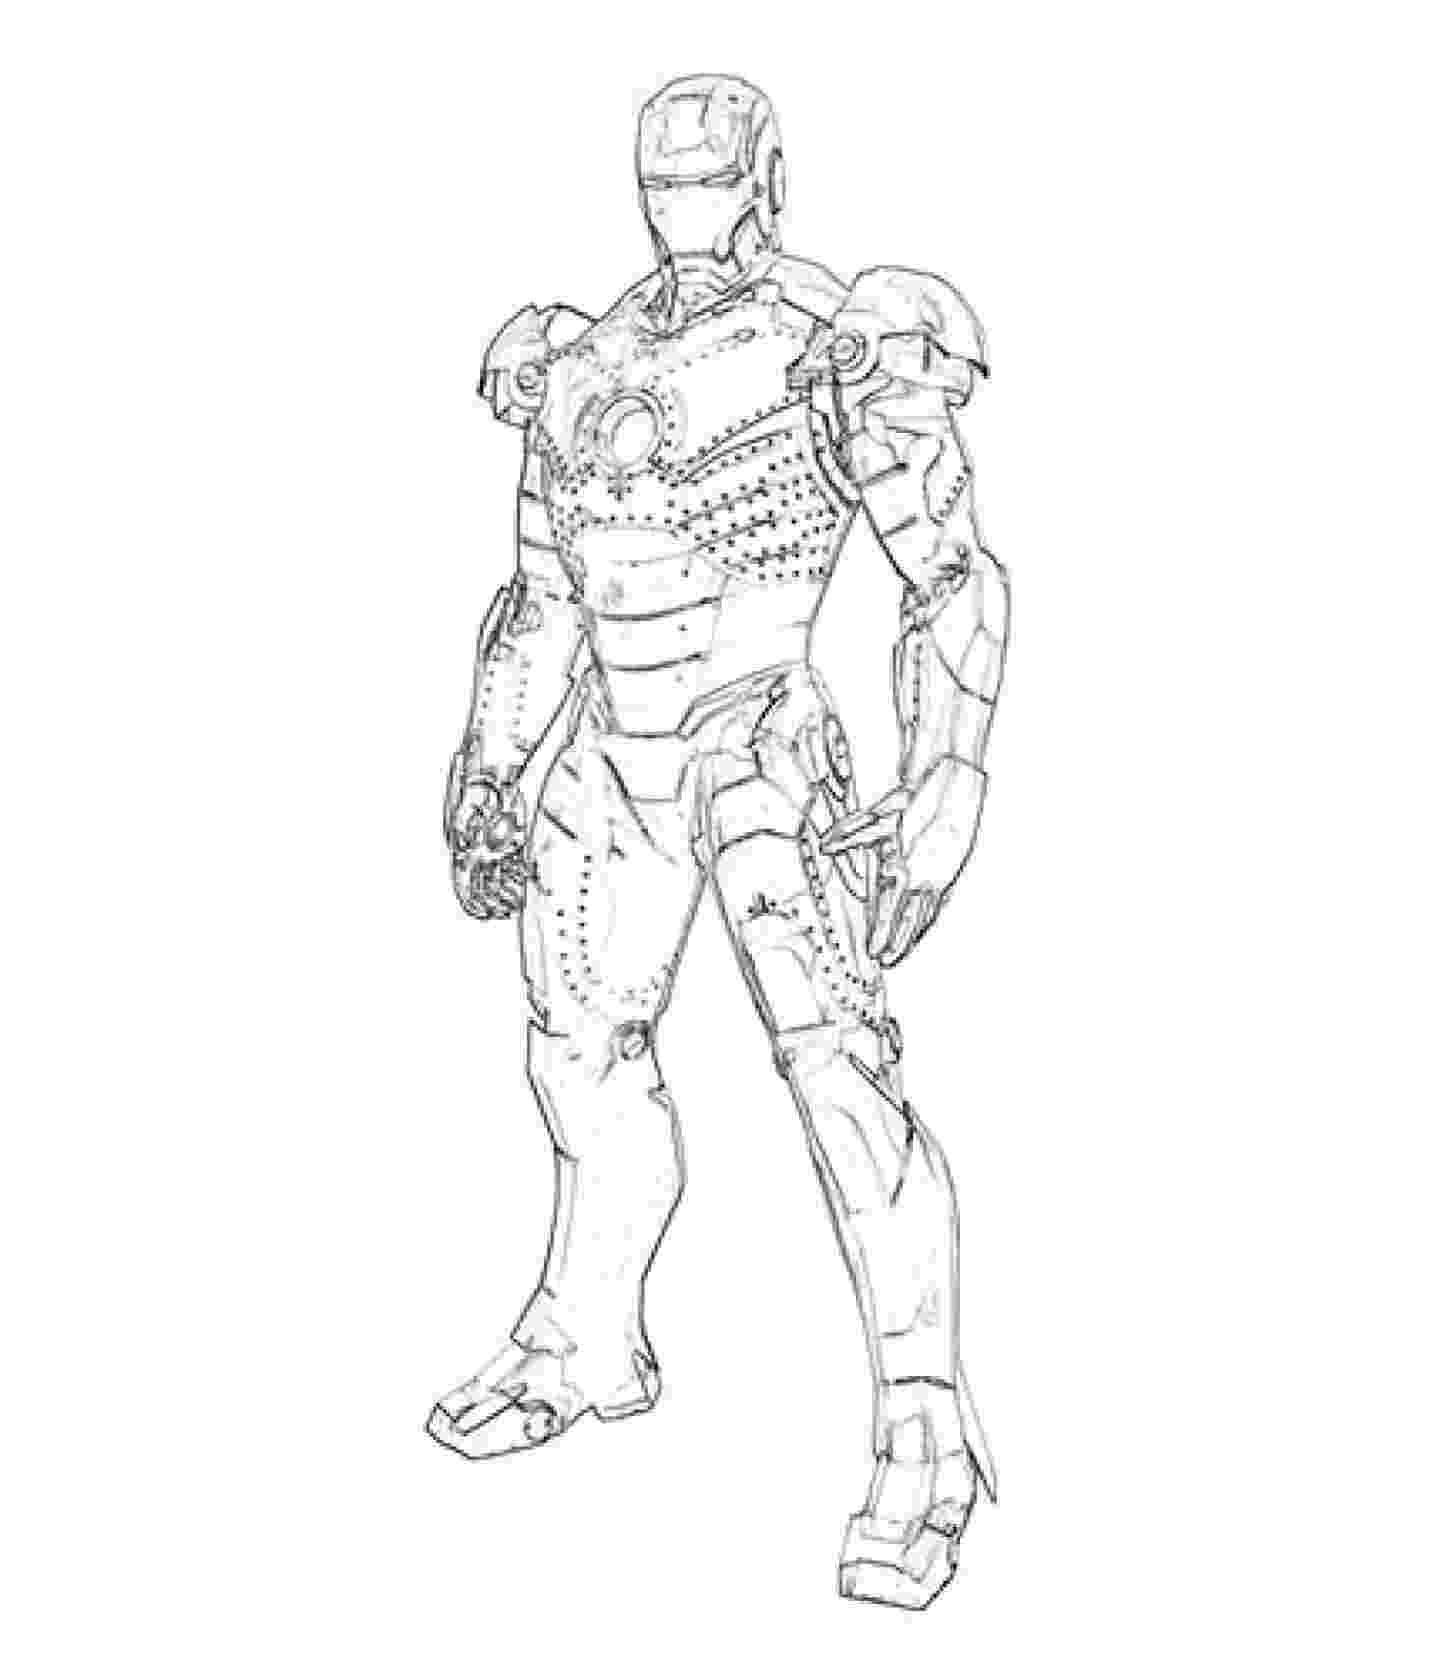 ironman pictures to print free printable iron man coloring pages for kids best pictures to ironman print